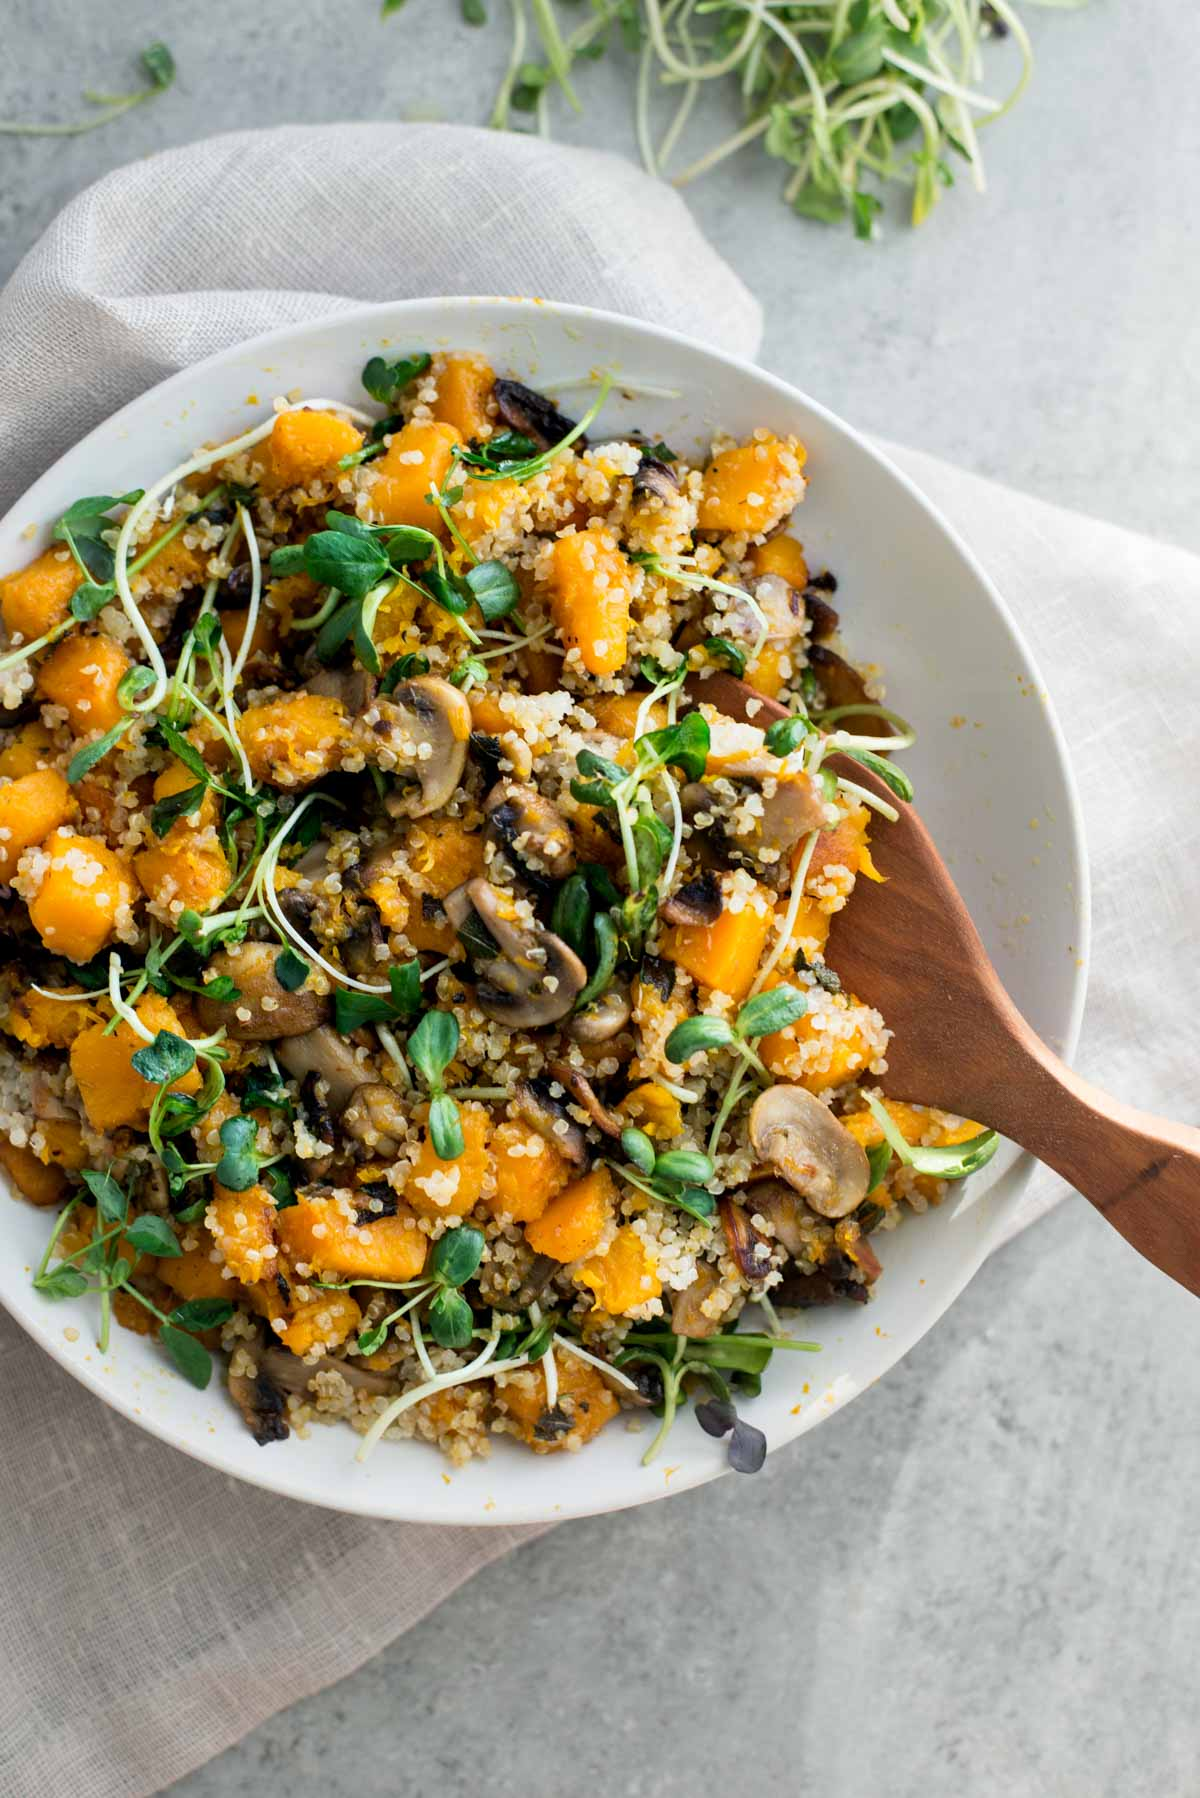 Did you know you shouldn't eat cold salads and smoothies during the fall and winter? Learn more and this delicious recipe for a warm butternut squash salad